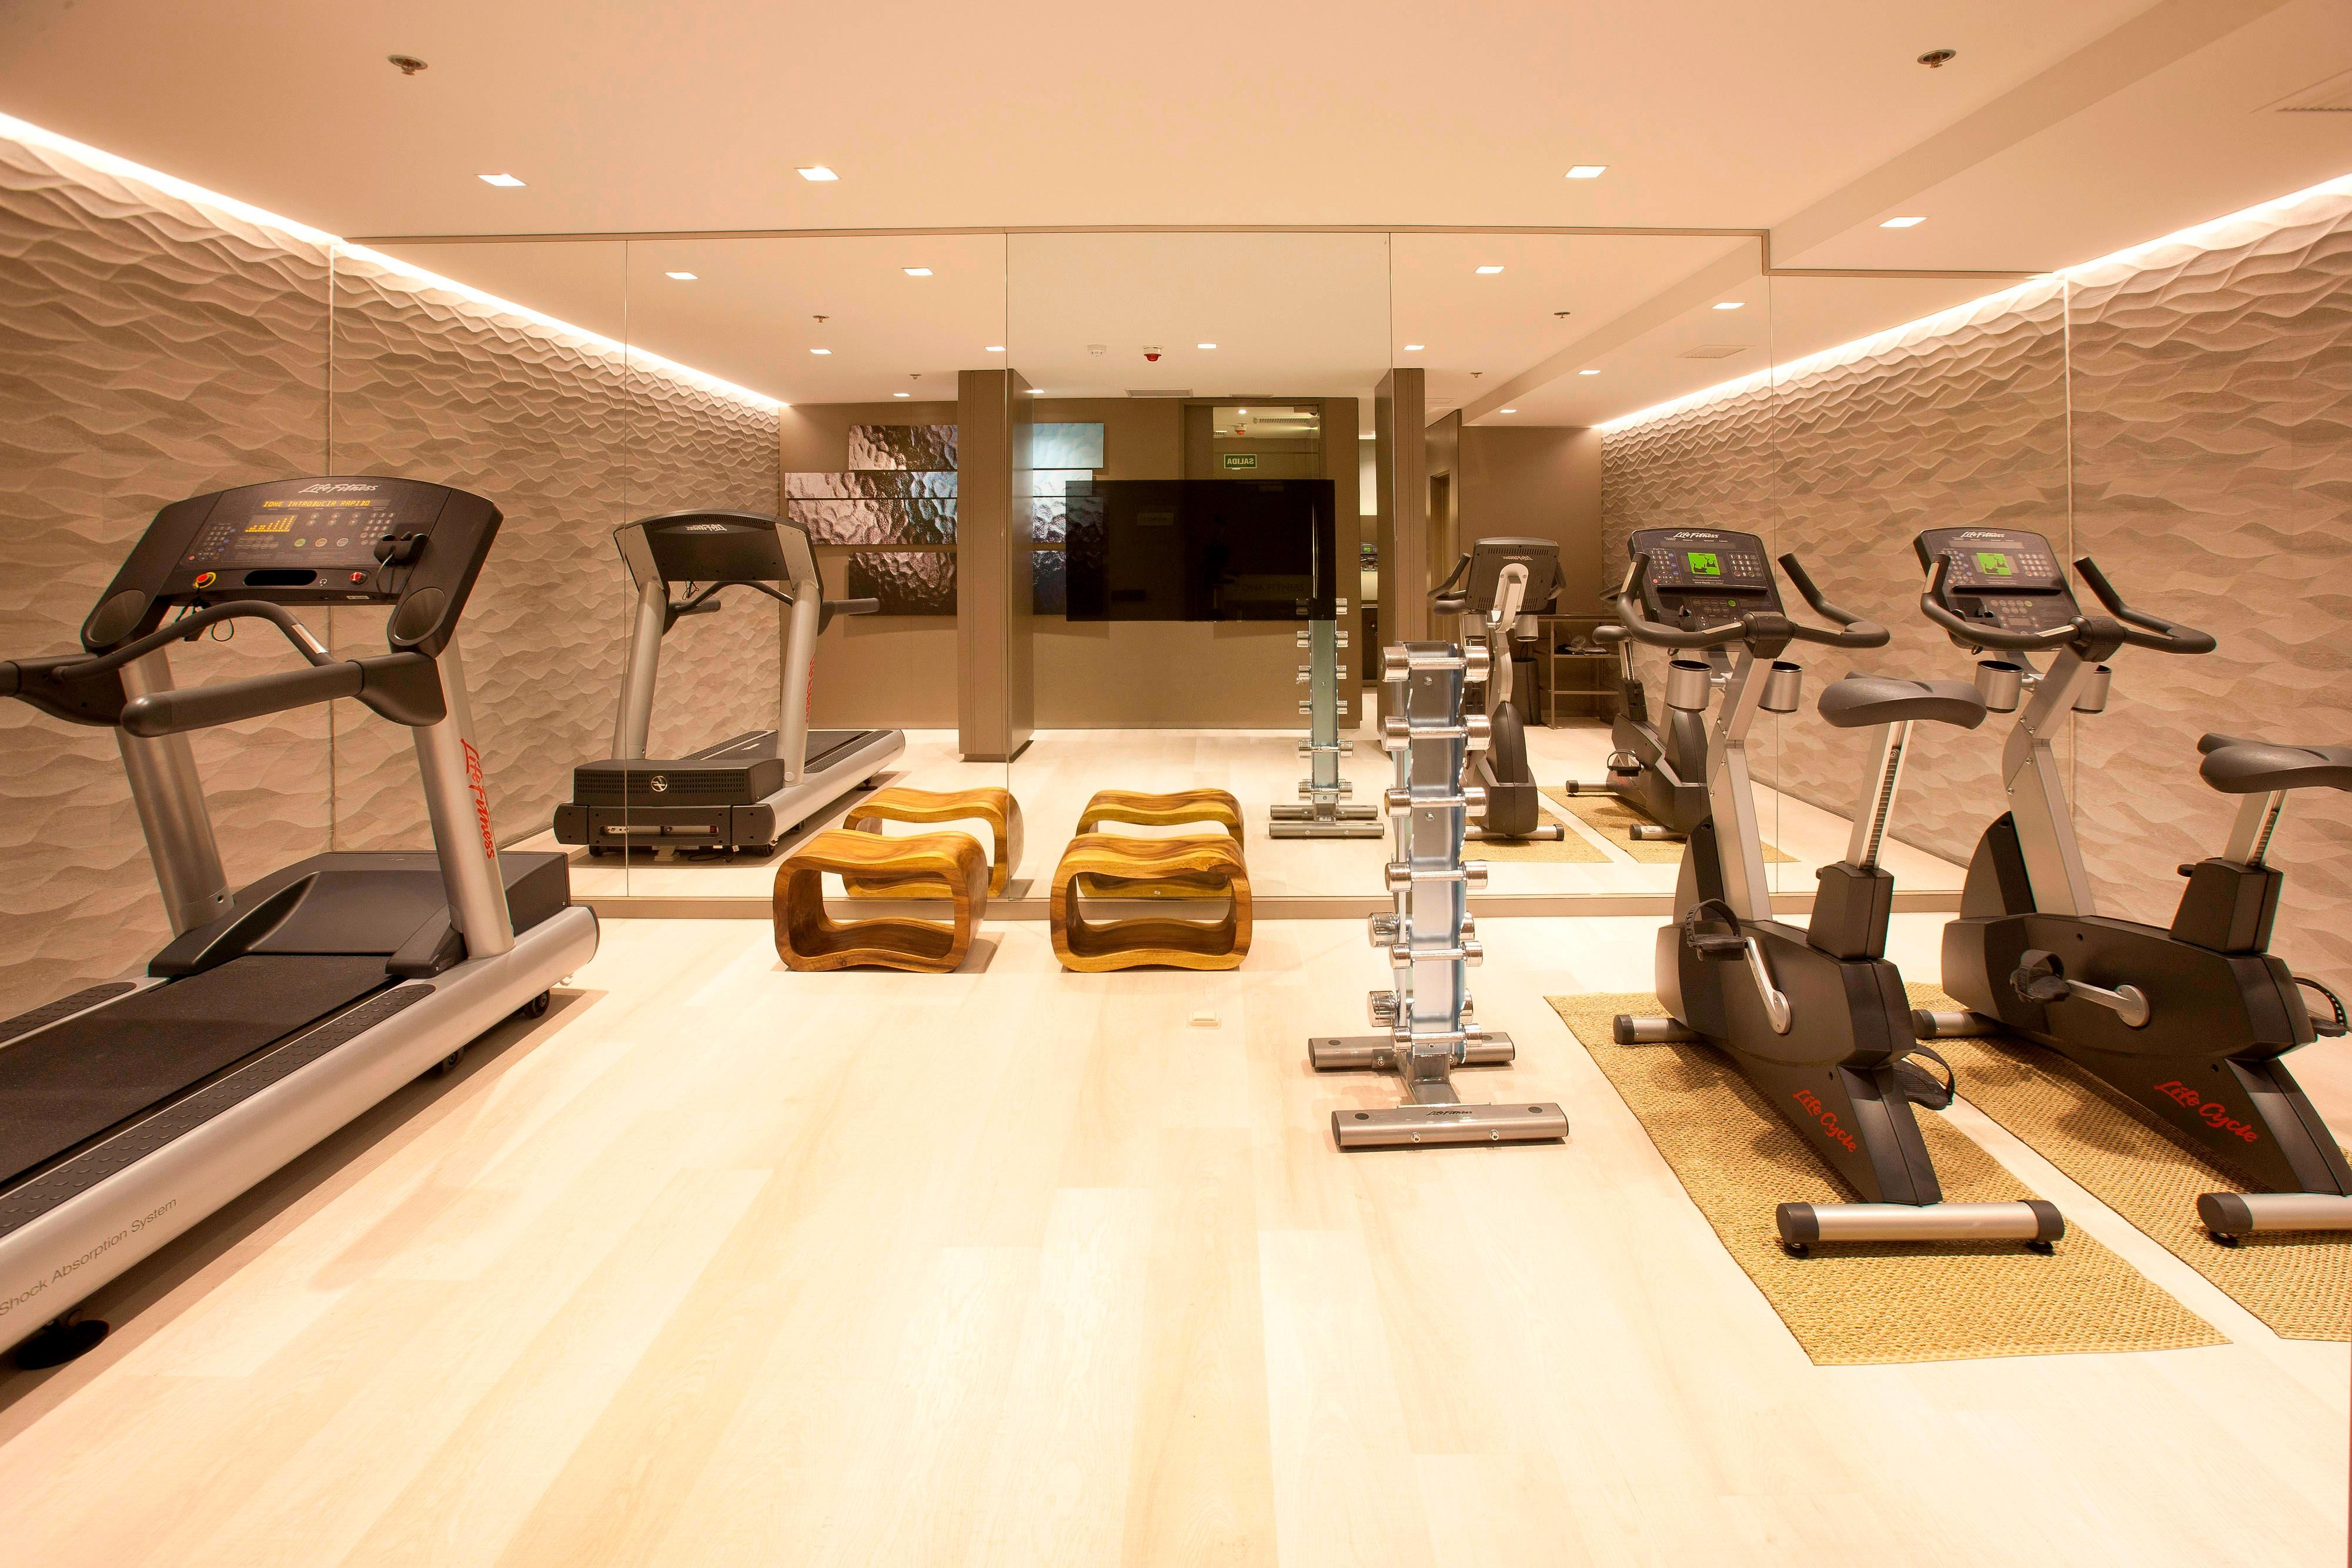 Hotel in Valencia with Fitness center